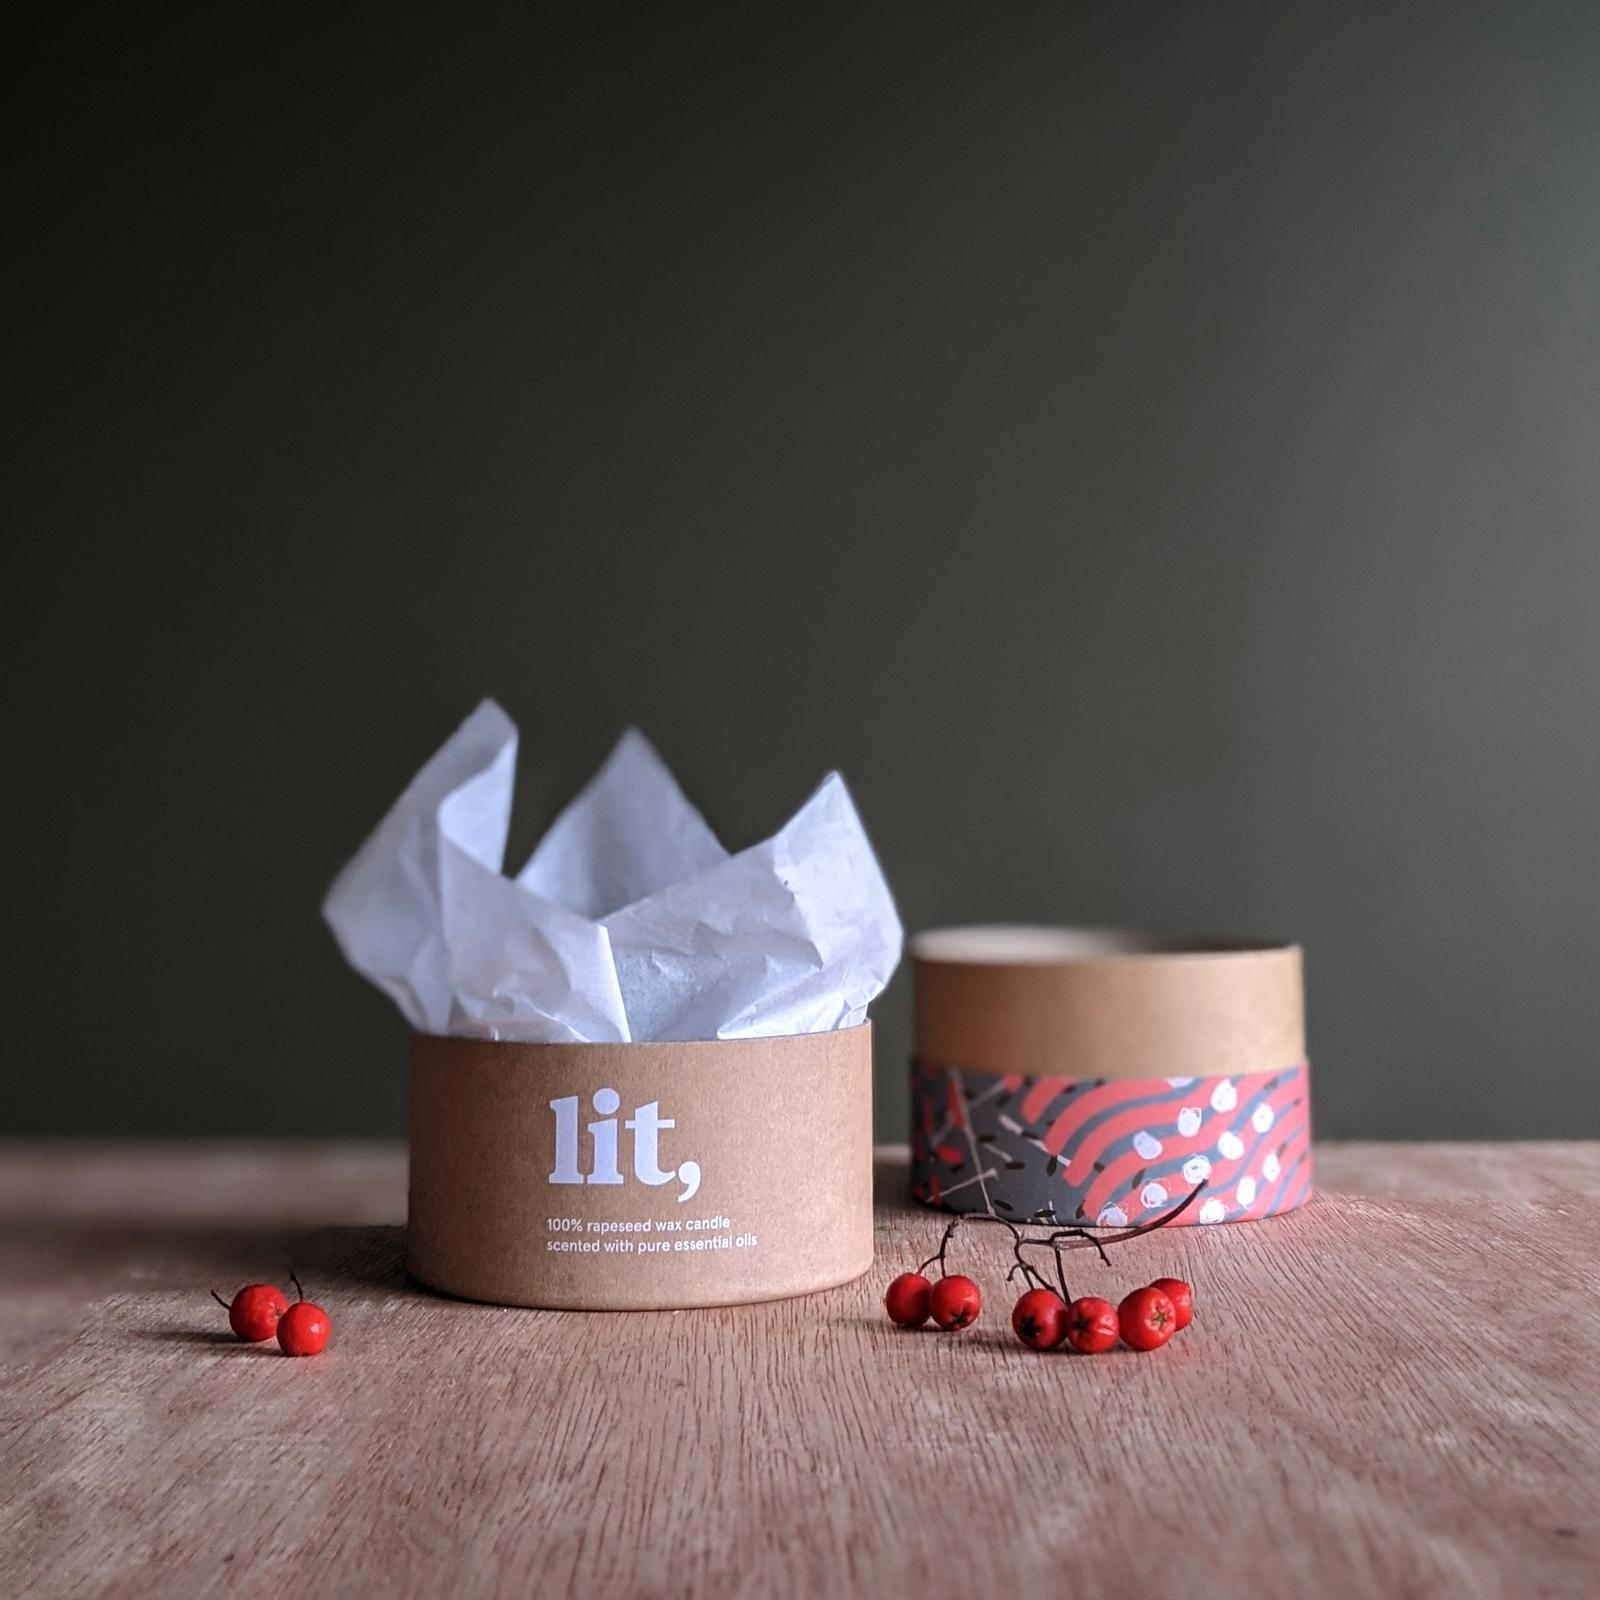 A photograph of Lit Homeware packaging.